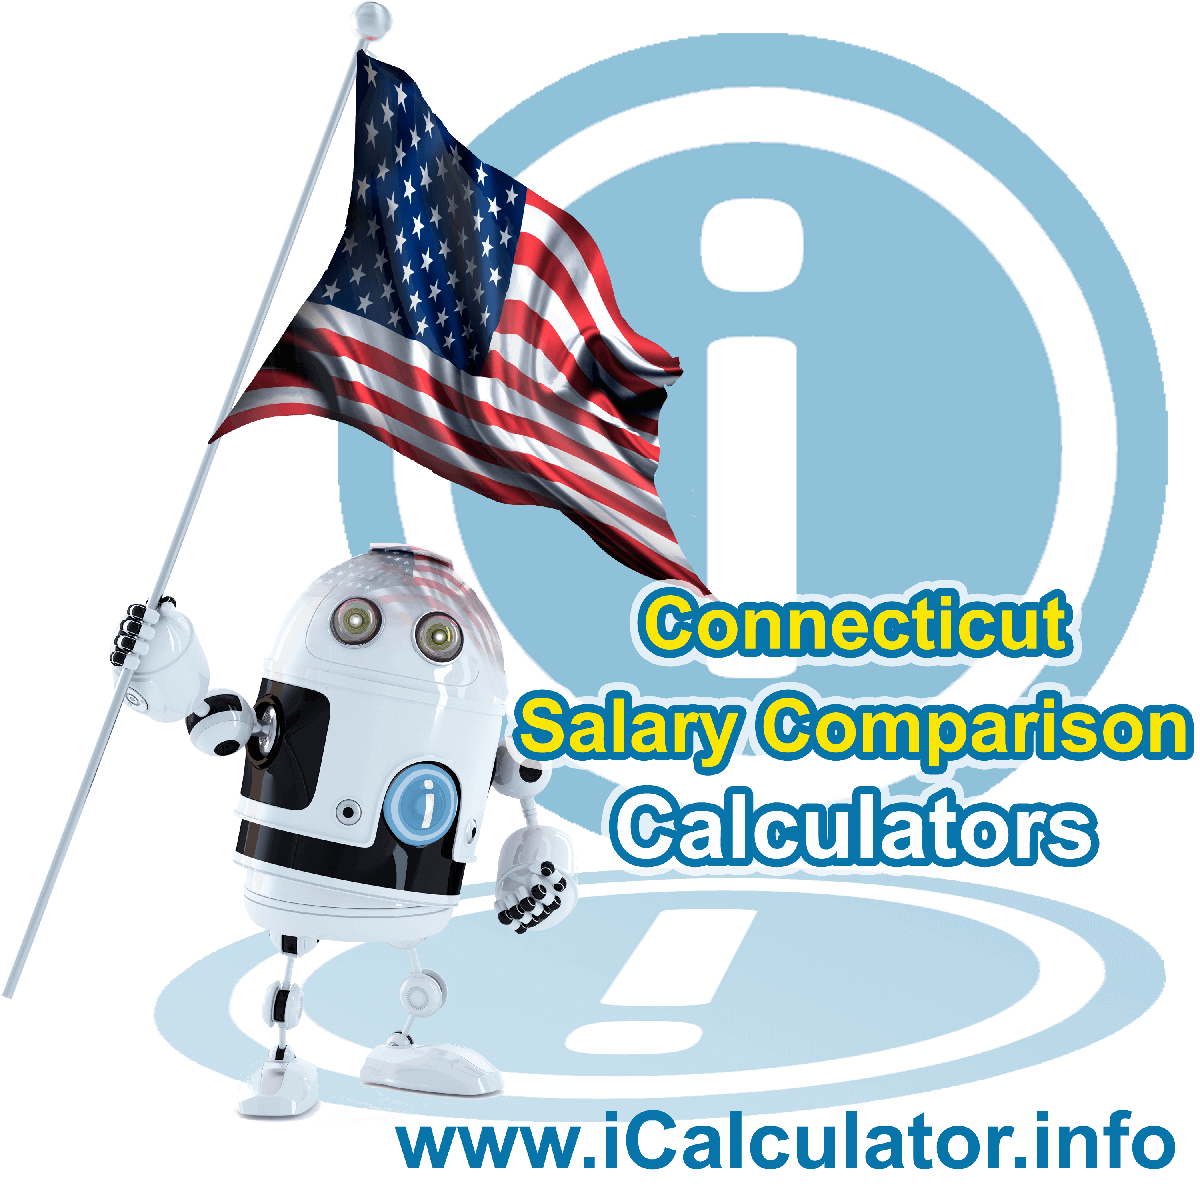 Connecticut Salary Comparison Calculator 2020 | iCalculator | The Connecticut Salary Comparison Calculator allows you to quickly calculate and compare upto 6 salaries in Connecticut or between other states for the 2020 tax year and historical tax years. Its an excellent tool for jobseekers, pay raise comparison and comparison of salaries between different US States